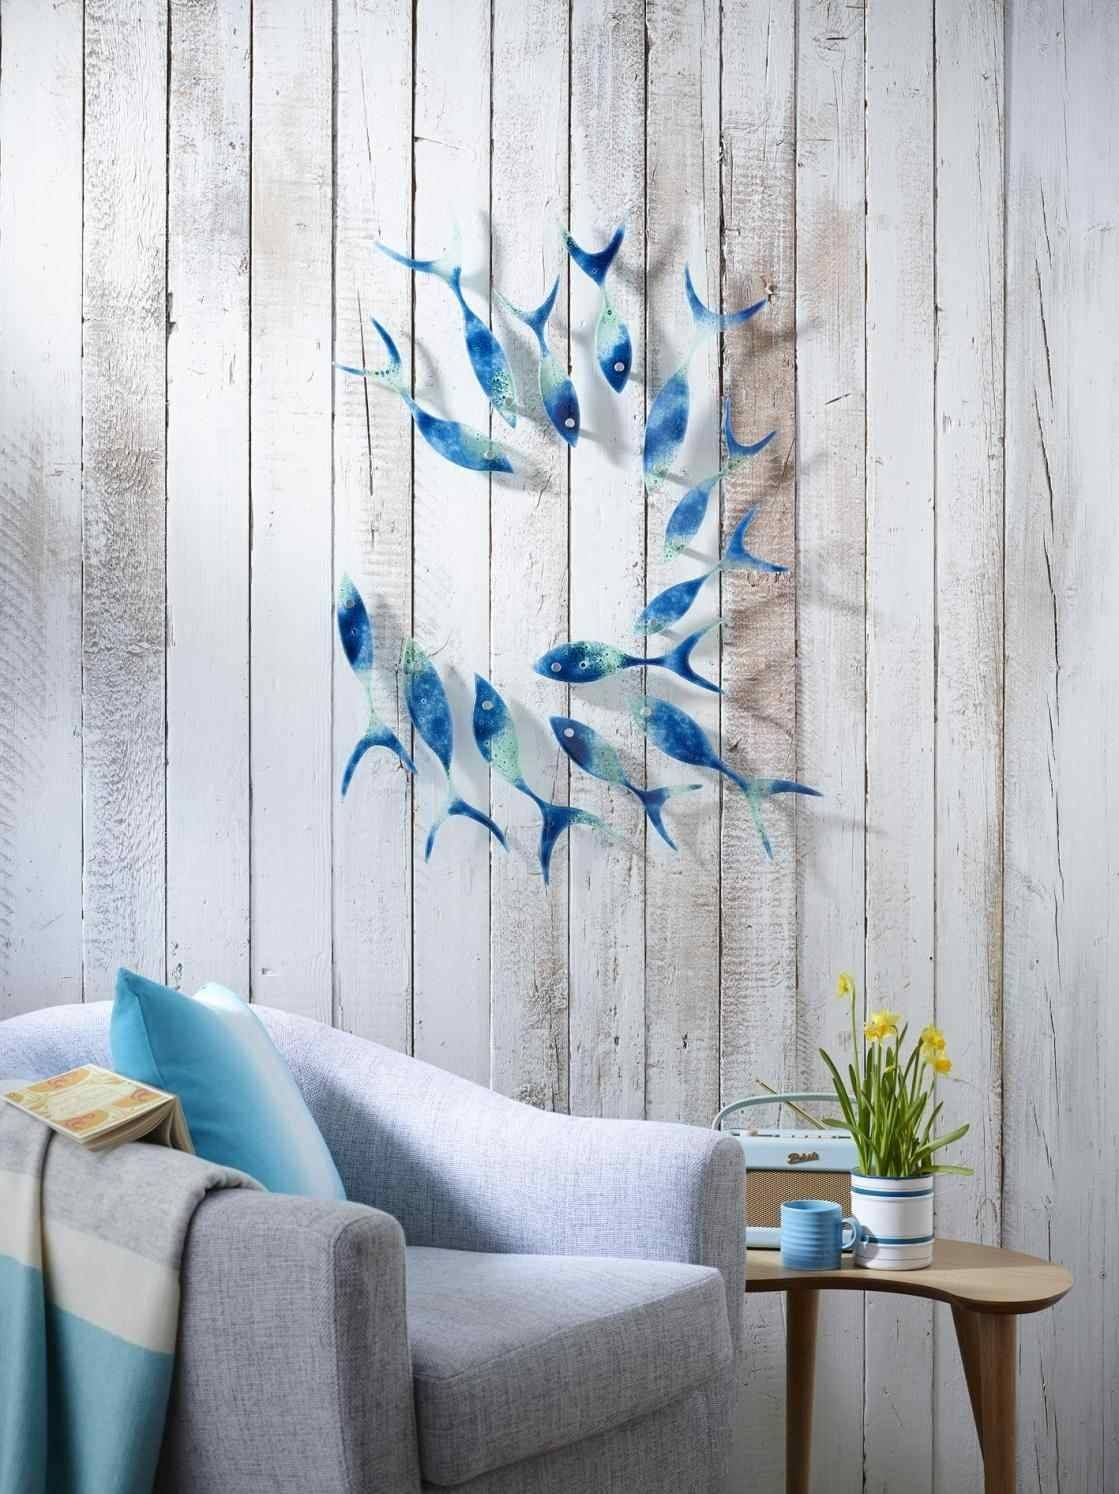 Metal Wall Art Fish Shoal | Home Interior Decor Throughout Best And Newest Shoal Of Fish Metal Wall Art (View 13 of 30)